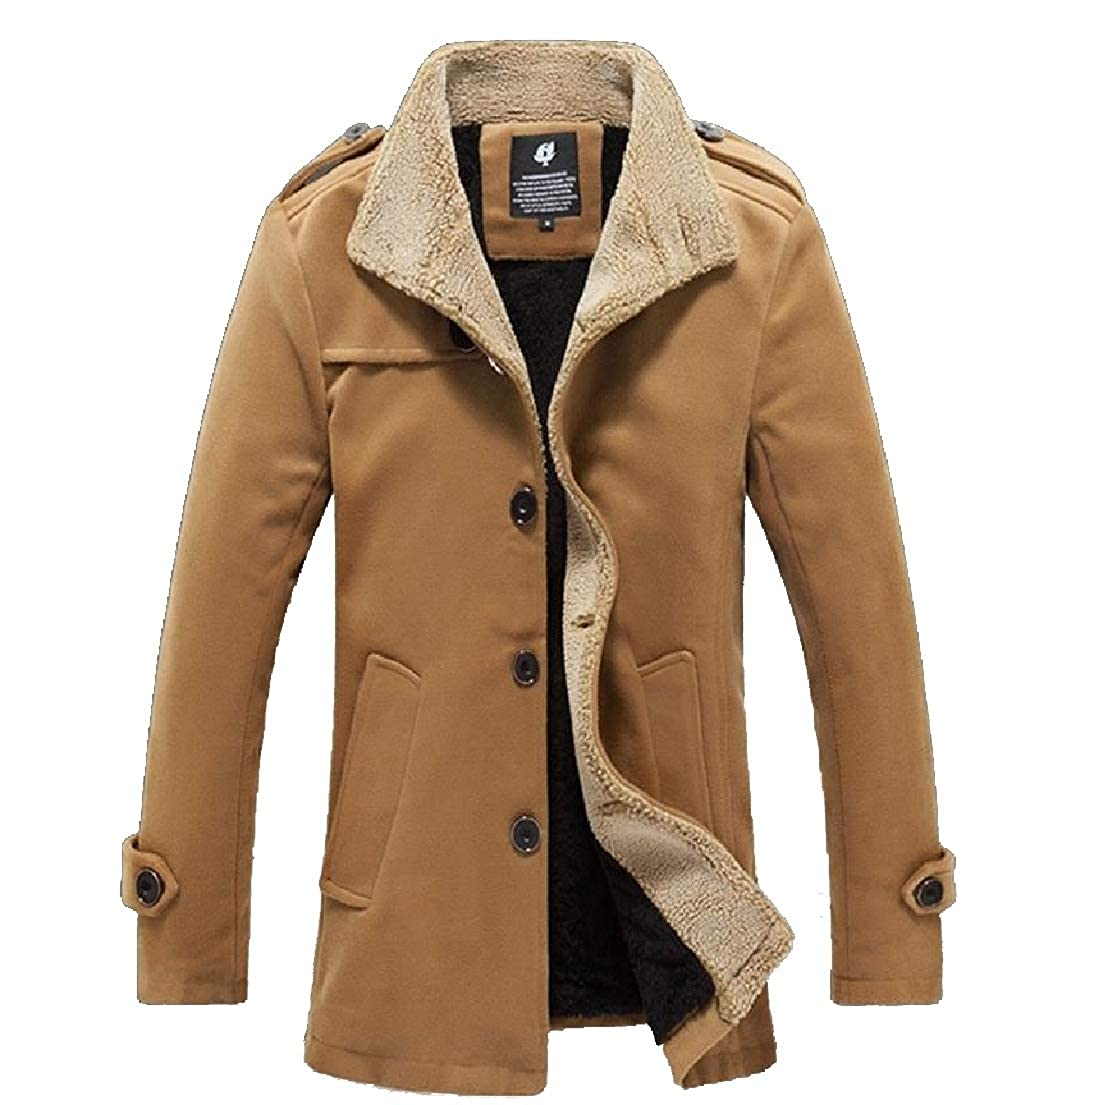 YUNY Mens Pure Color Plus Velvet Pockets Thickening Button Down Down Jackets Khaki S